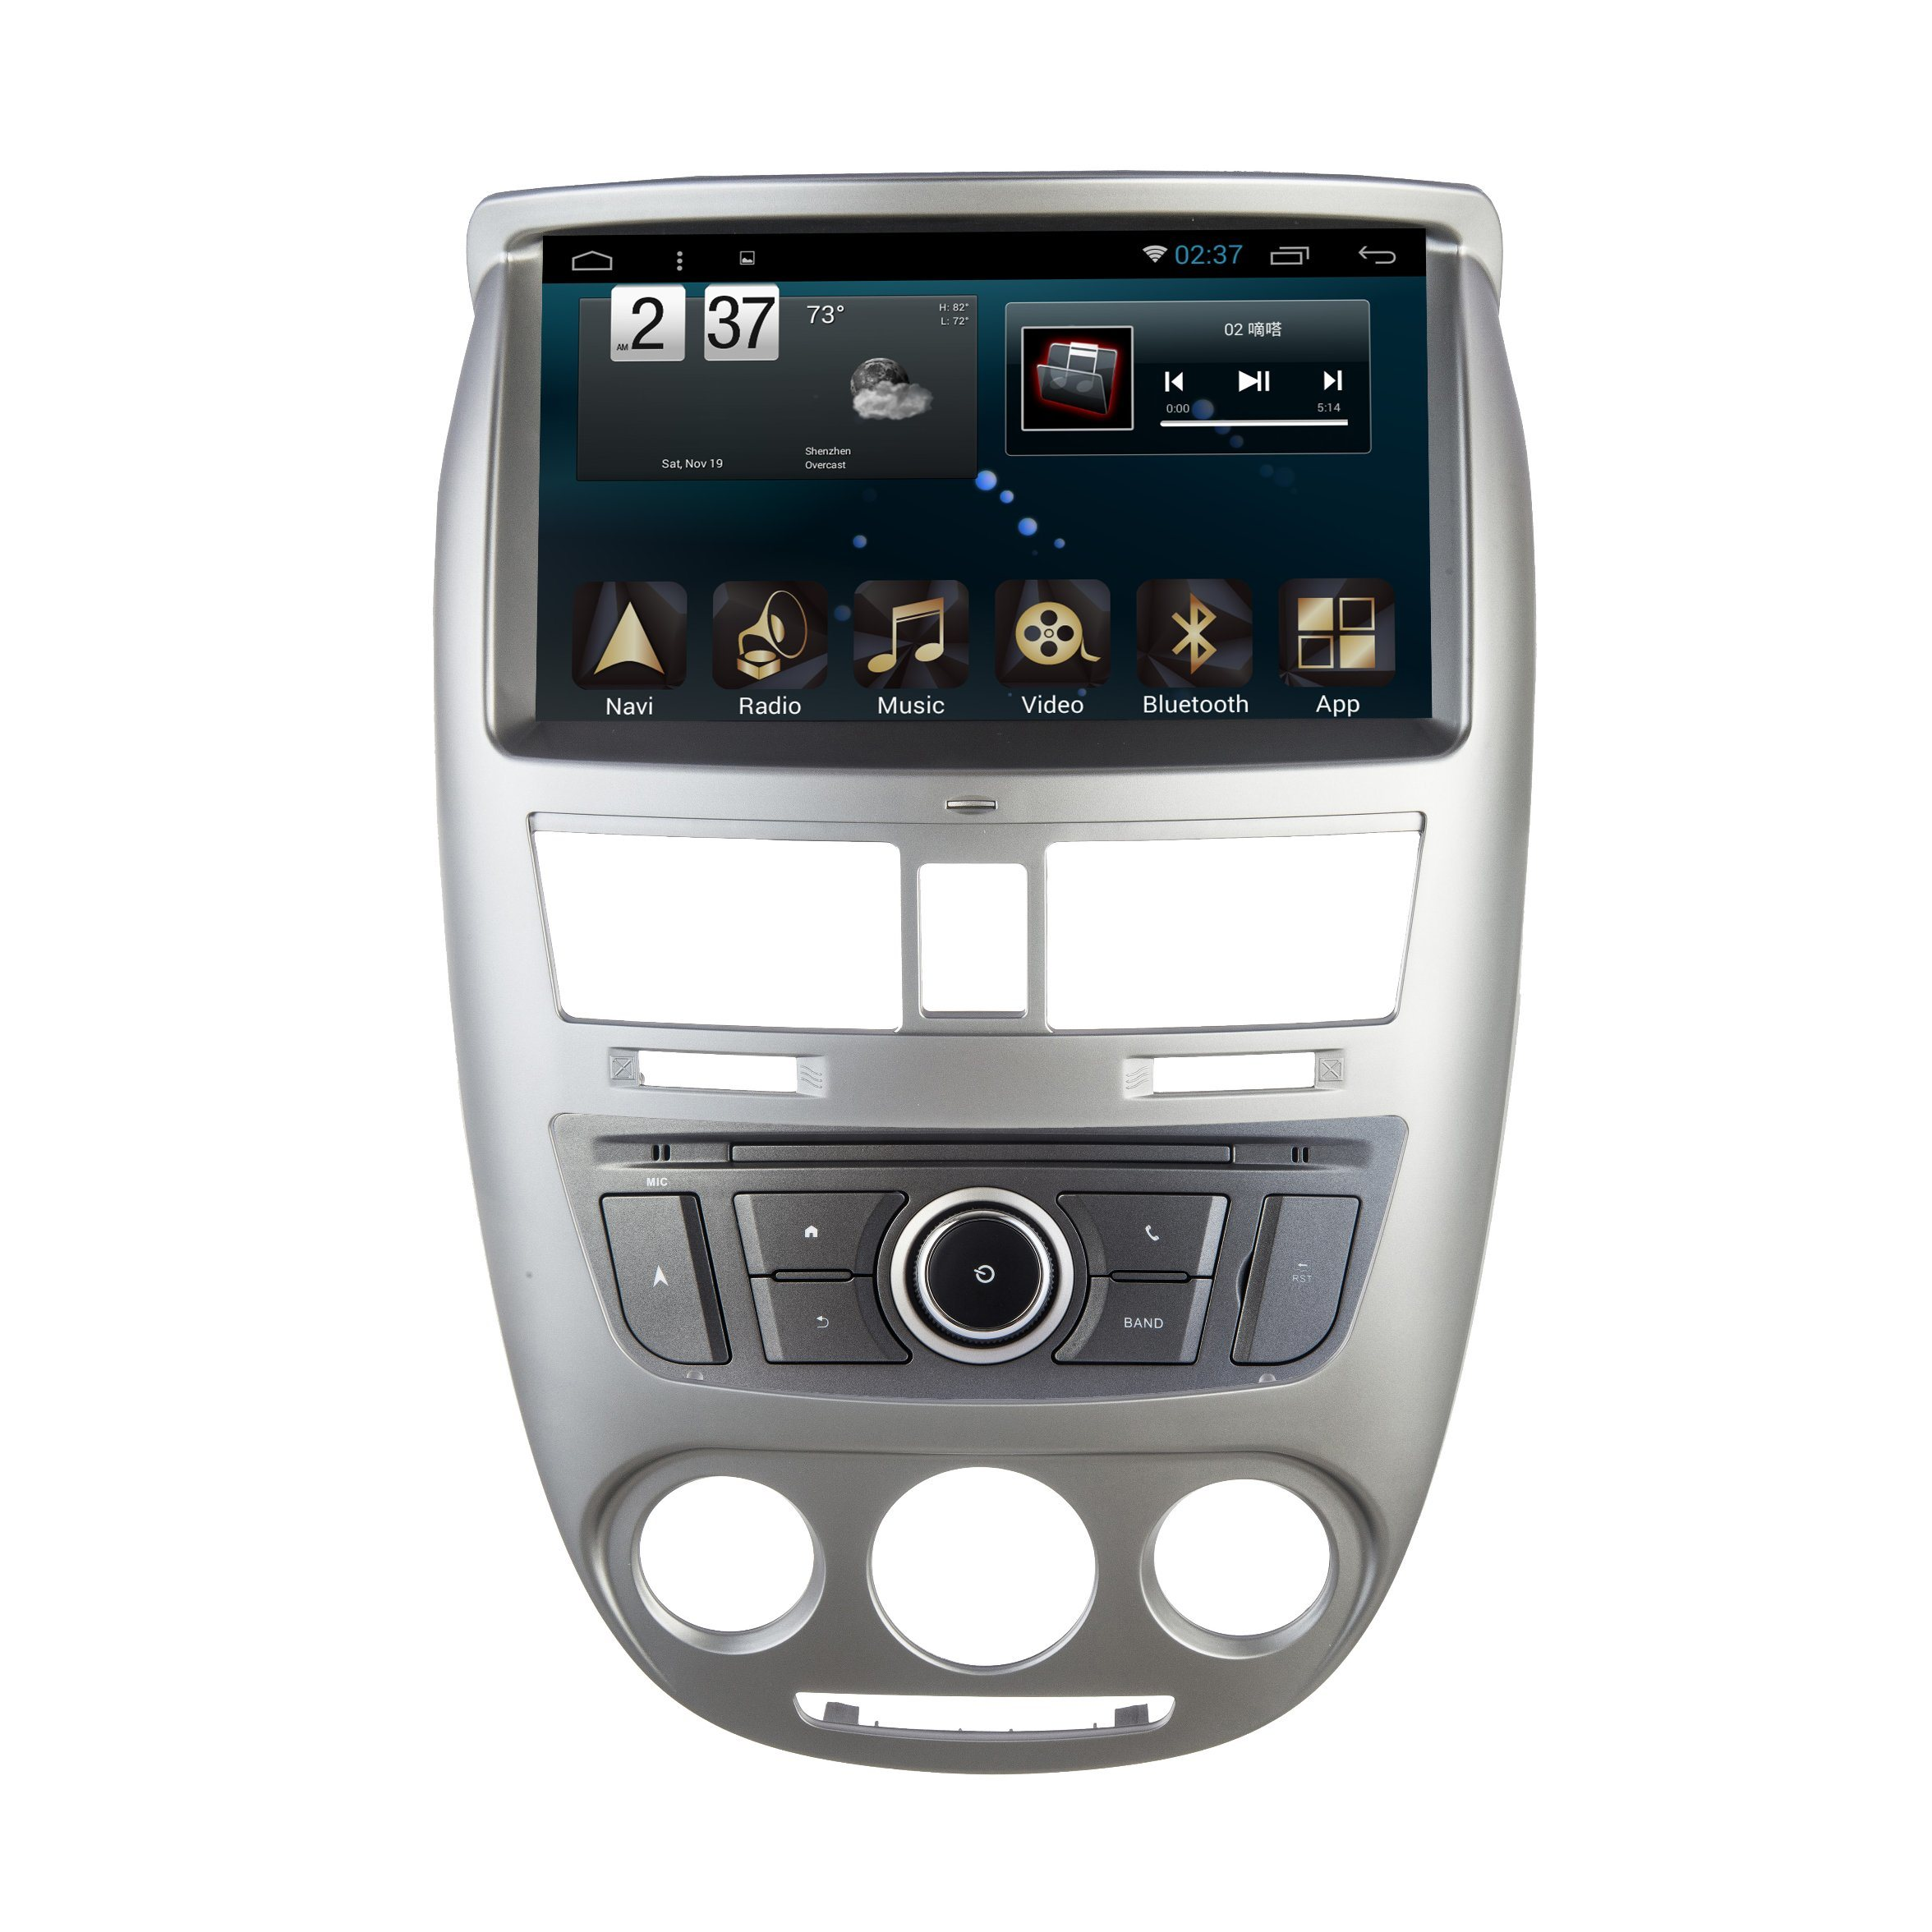 New Android System Car Navigation for Car Player with GPS/Bluetooth